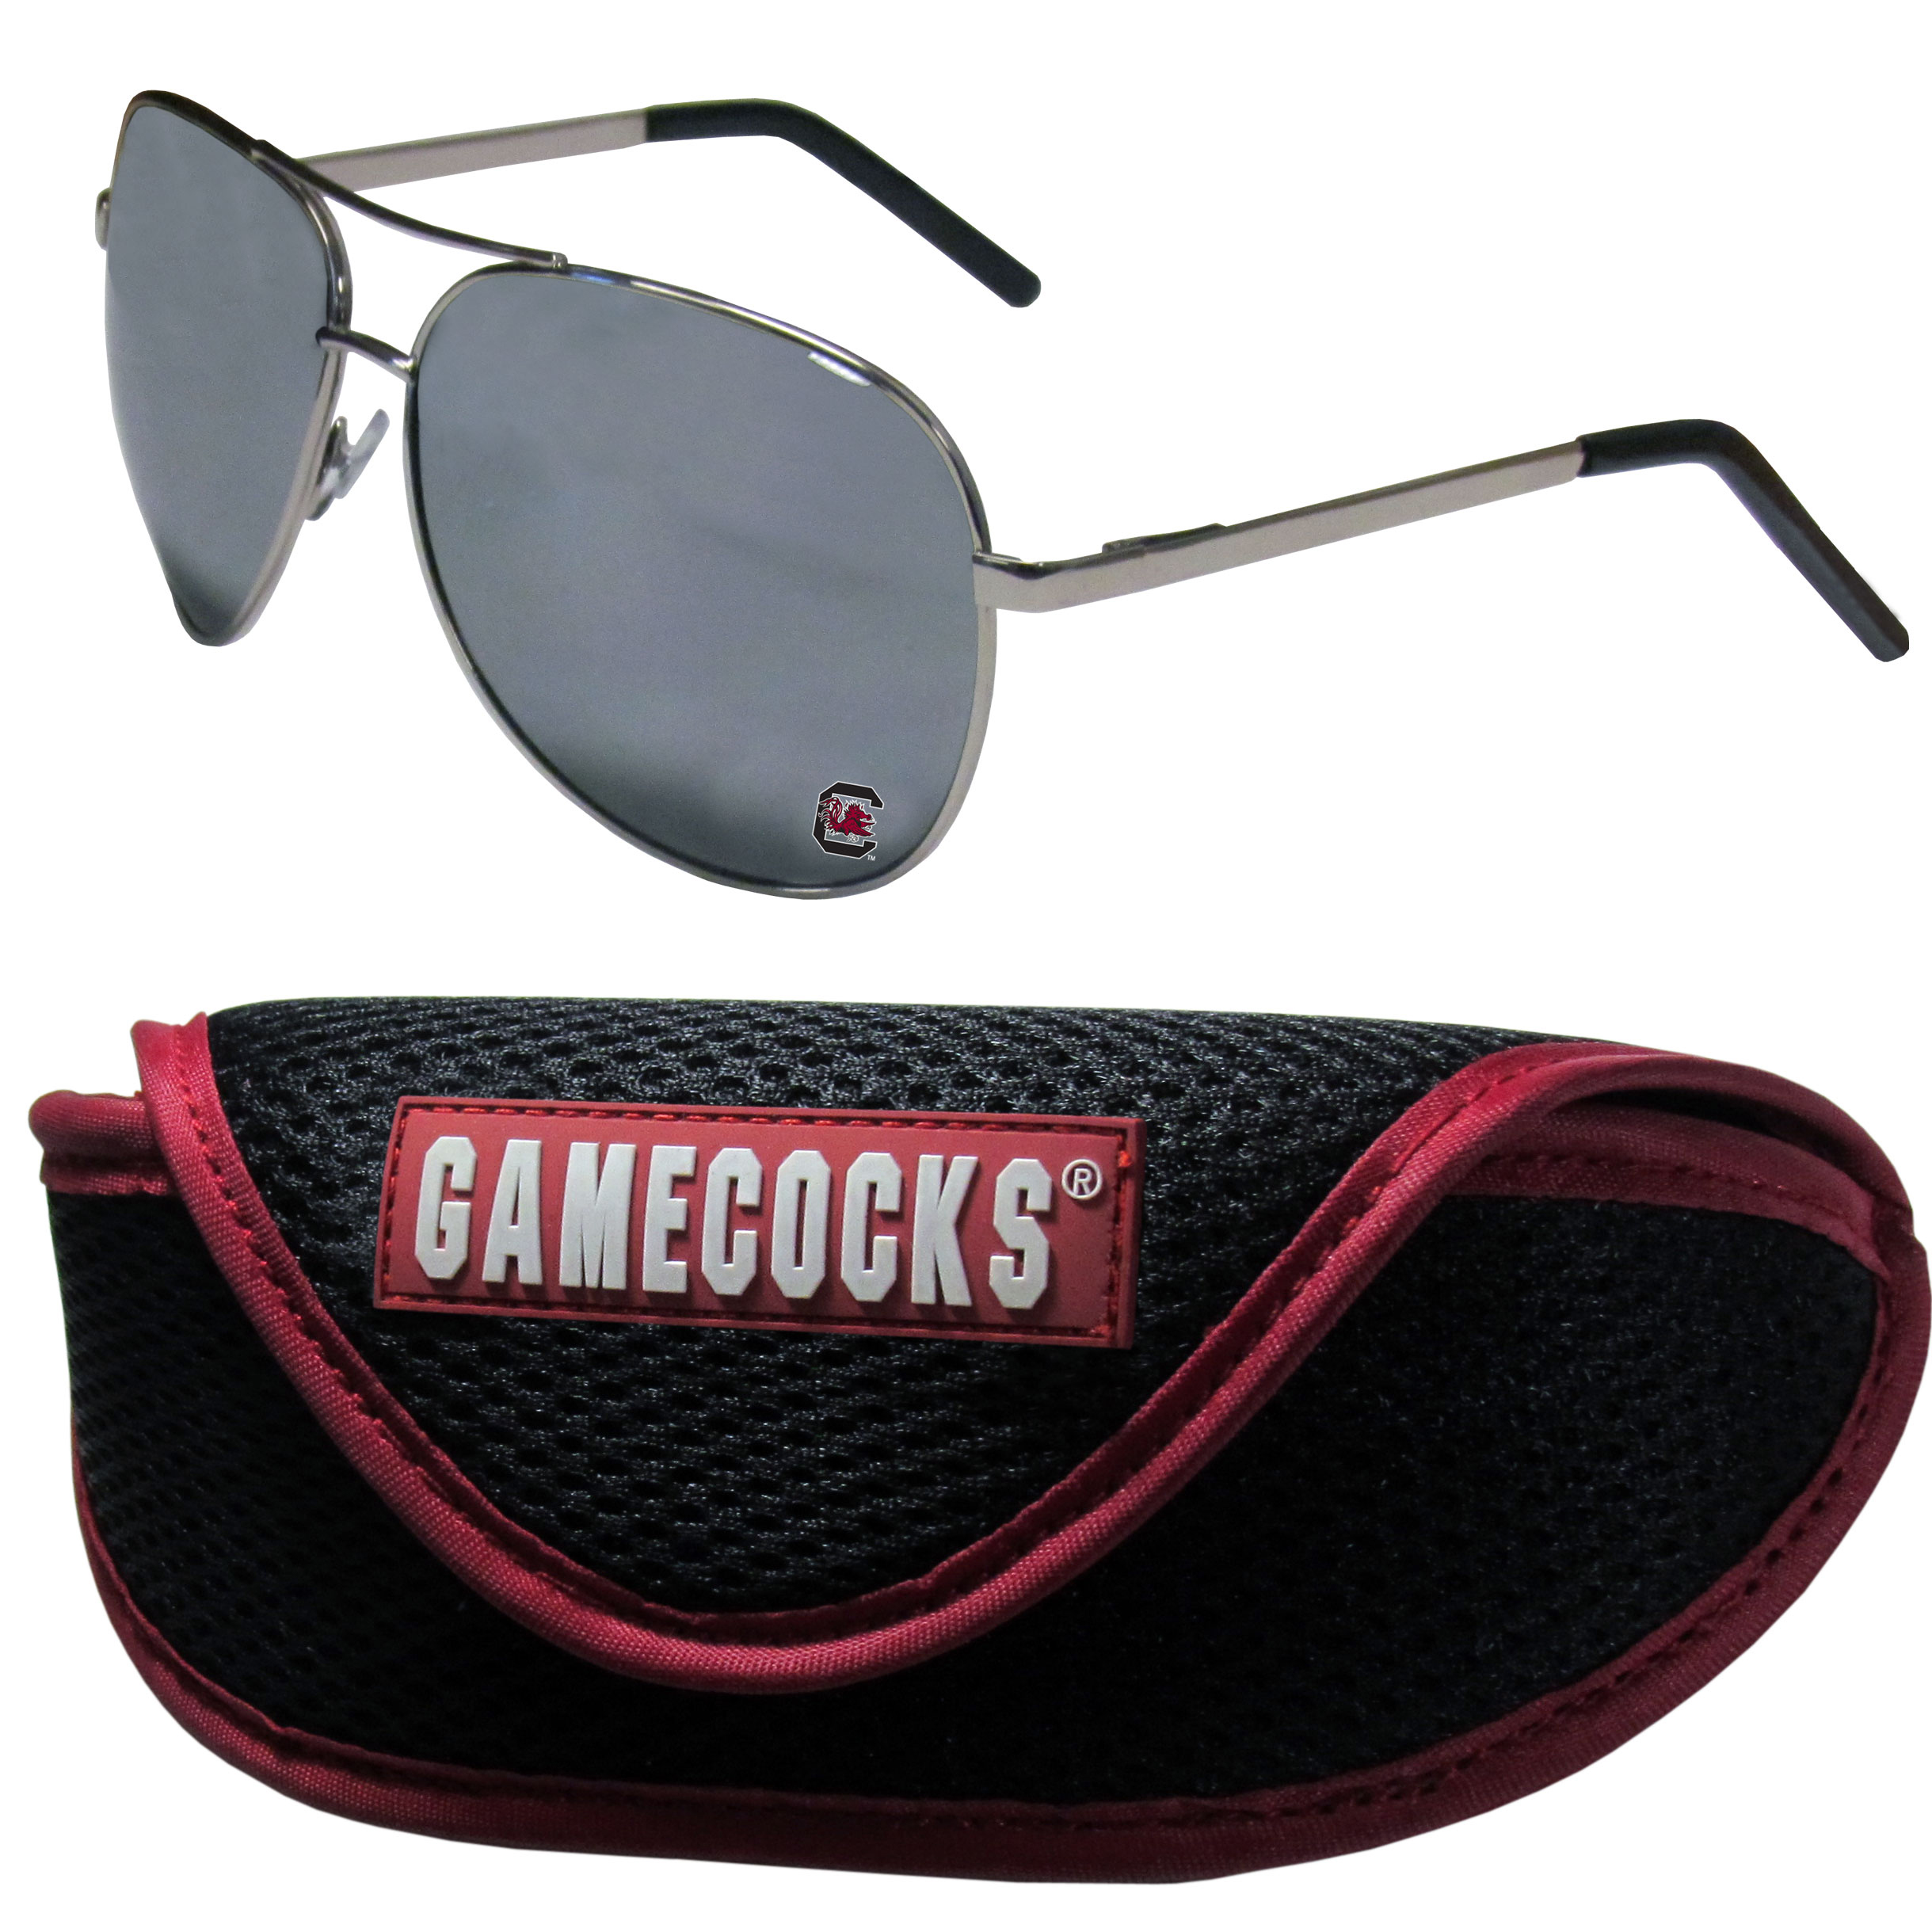 S. Carolina Gamecocks Aviator Sunglasses and Sports Case - Aviator sunglasses are truly an iconic retro fashion statement that never goes out-of-style. Our S. Carolina Gamecocks  aviator sunglasses pair this classic look with your love of the game. The iridium coated lenses reduce glare while driving, boating, golfing and their 100% UVA/UVB rating provides you with the maximum UV protection for all your outdoor activities. A millennial favorite, these affordable designer frames are the perfect eyewear accessory for a sports fan that is looking for high-quality at an affordable price. The durable, flex hinged frames are tough enough for hiking and camping or if you prefer sun bathing by the pool or on the beach these shades will really stand the test of time. The sunglasses come with a sporty case which has a large team logo on the lid that will make even the most die-hard fan proud!